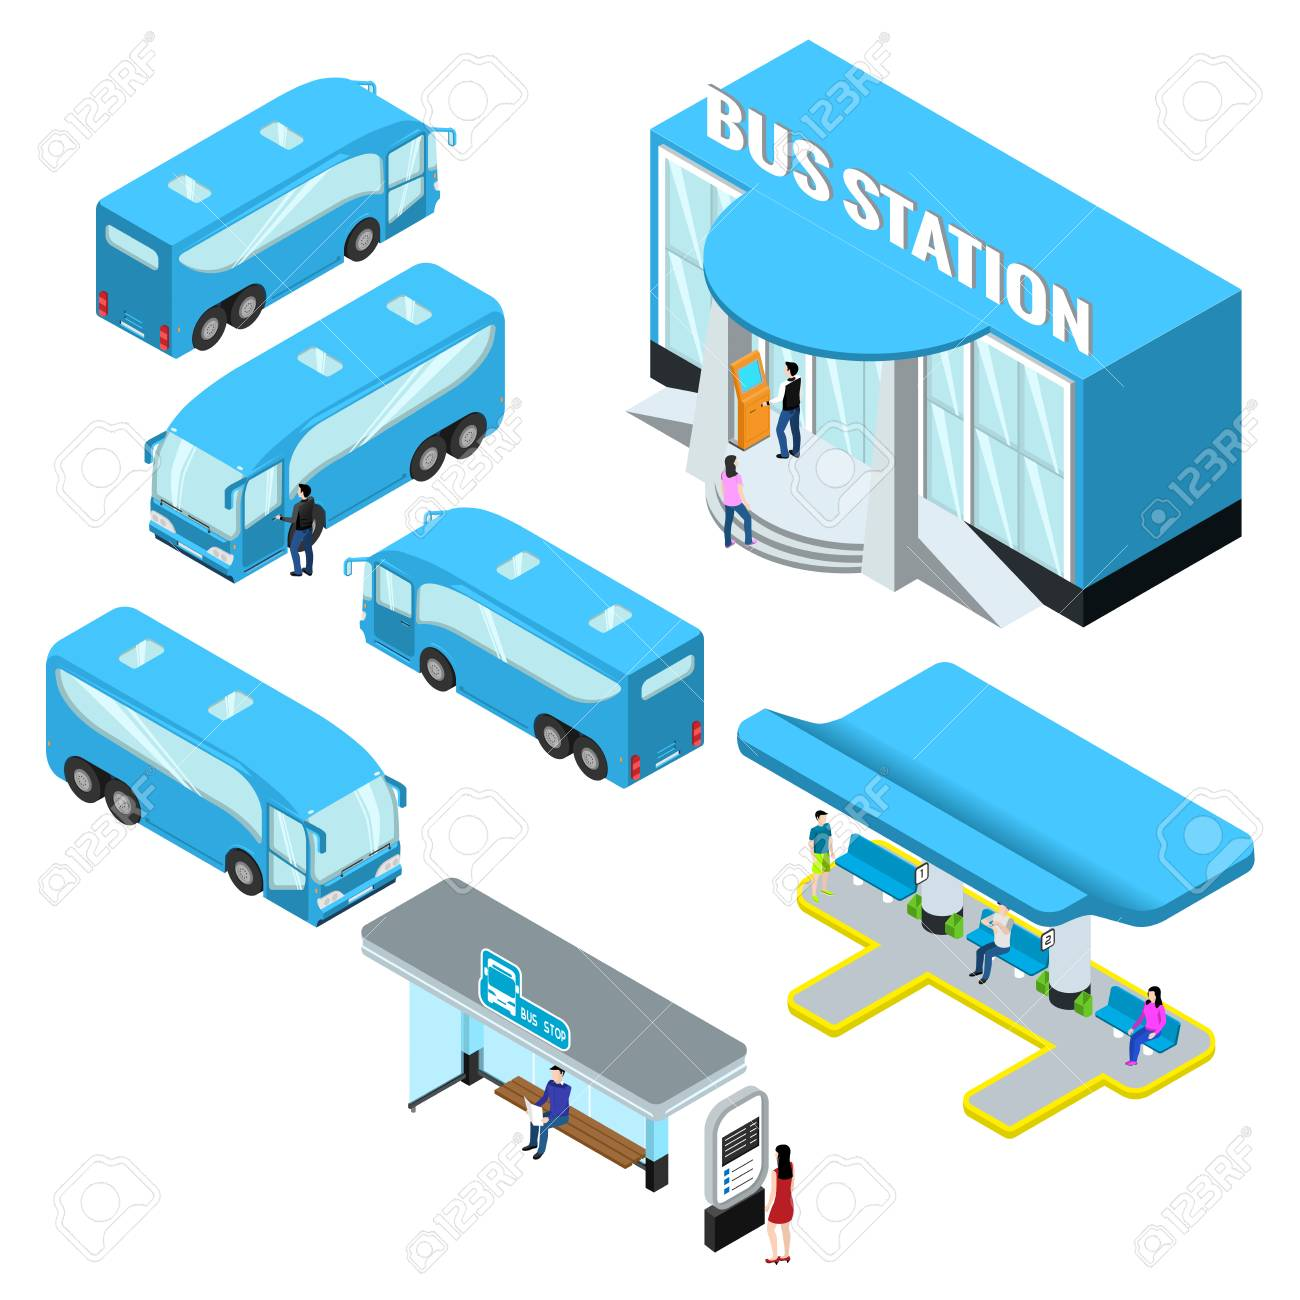 Bus station isometrics and buses, a platform for boarding a bus.